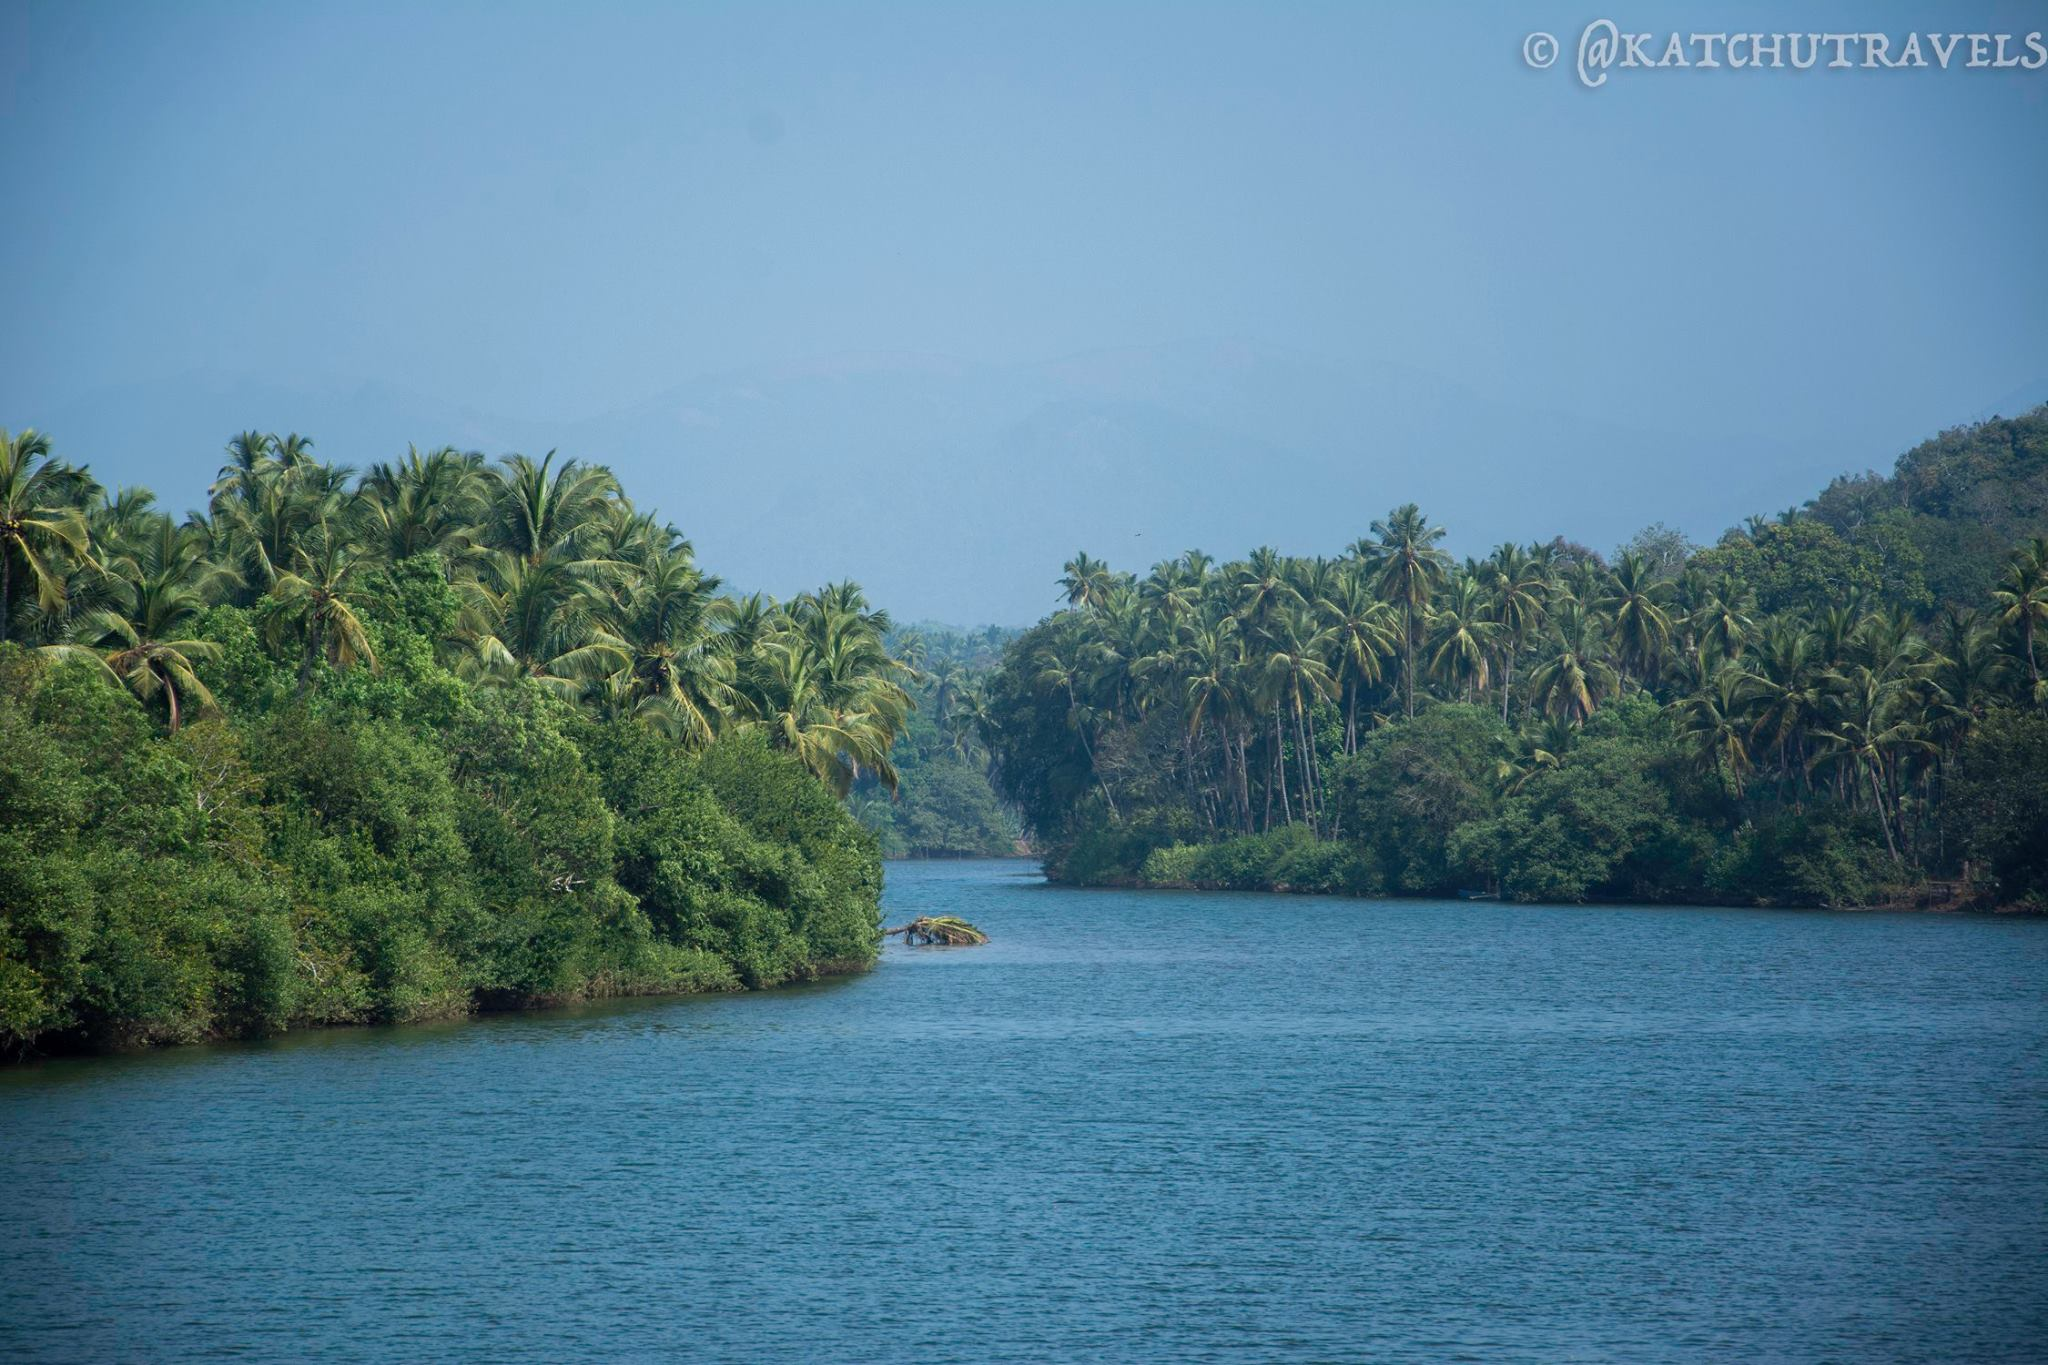 The Greens and Blues of Sadolxem, by the sides of the Talpona River (South Goa-India)